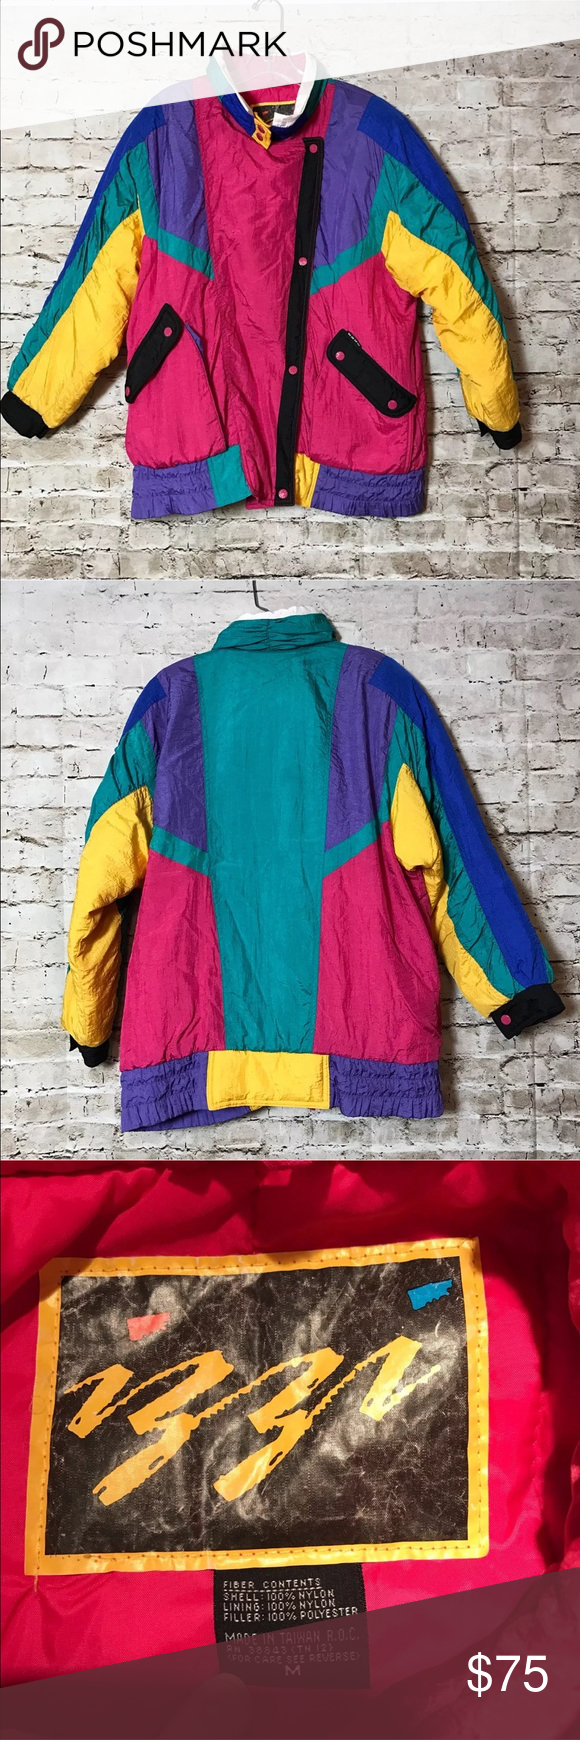 Vtg 80s 90s Izzi Freeze Play M Ski Jacket Coat Great Condition Measures About 28 5 From Shoulder To Bottom And About 26 Fro Ski Jacket Jackets Coats Jackets [ 1740 x 580 Pixel ]